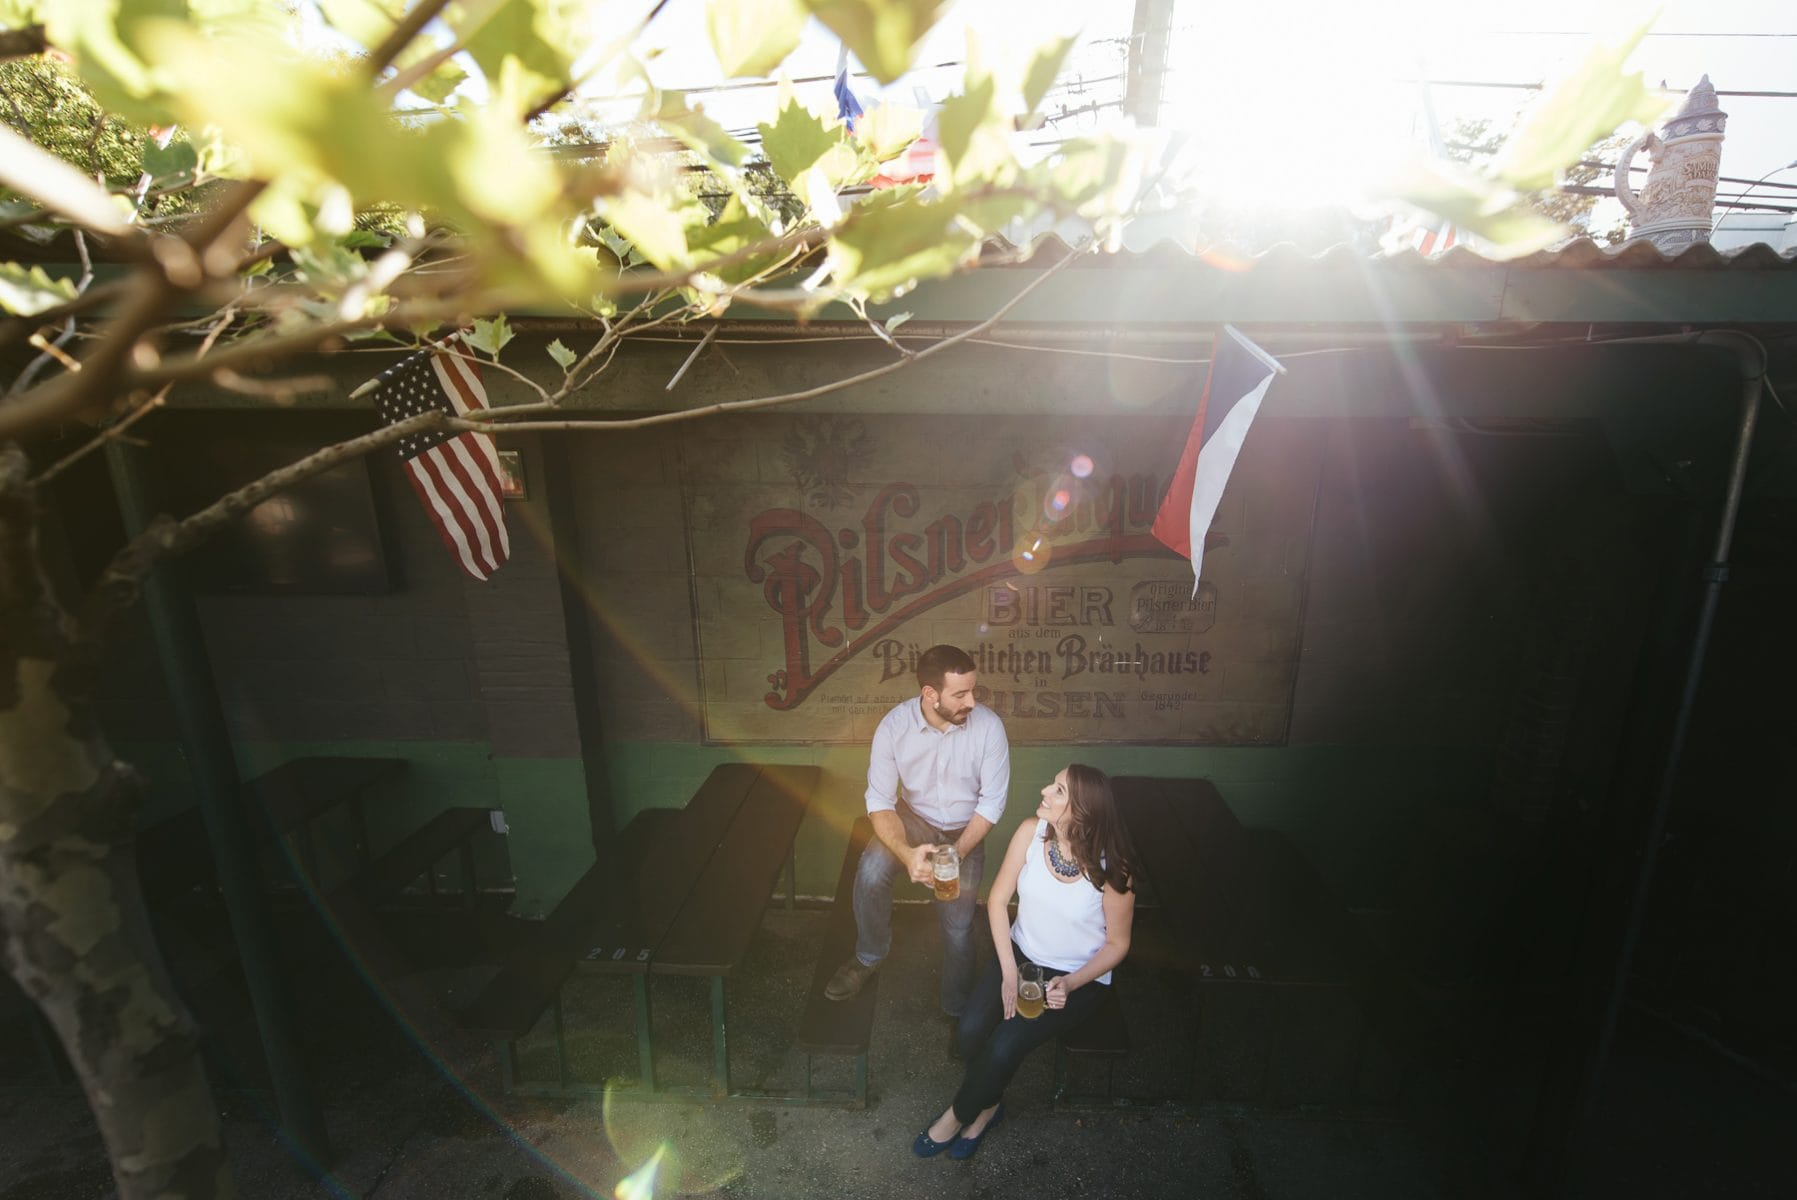 Beer garden engagement session